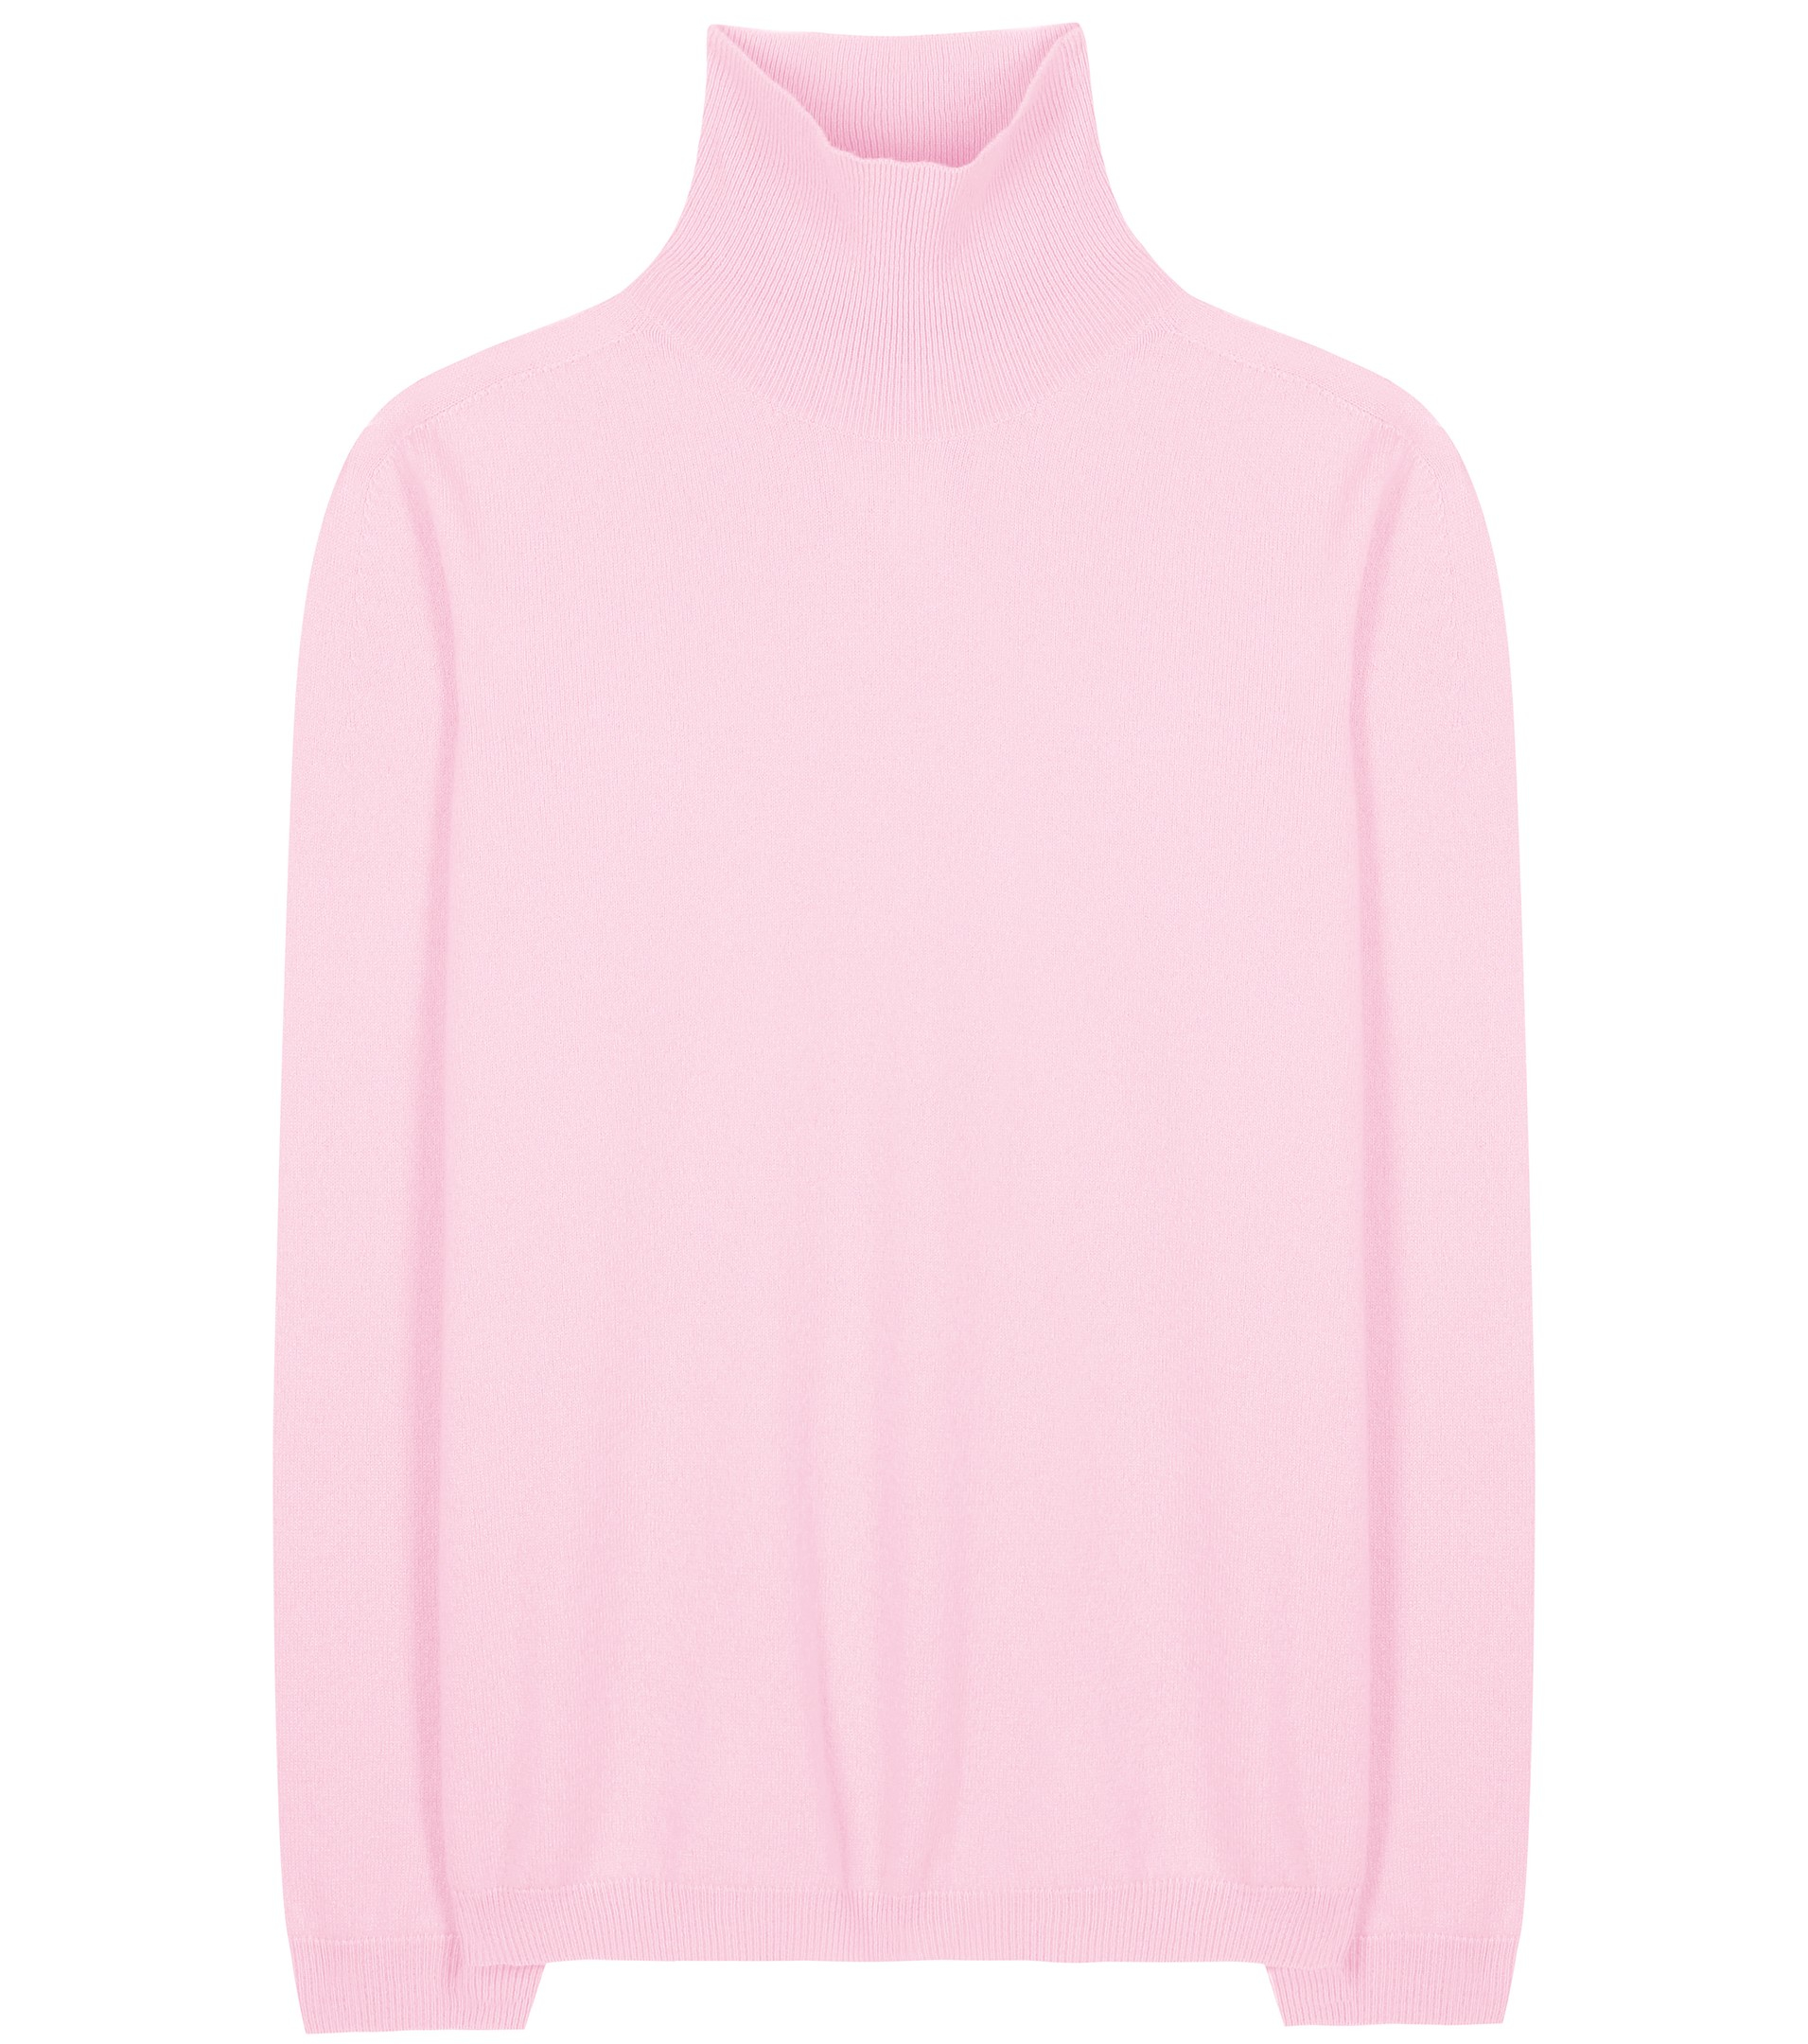 Jil sander Cashmere Turtleneck Sweater in Pink | Lyst